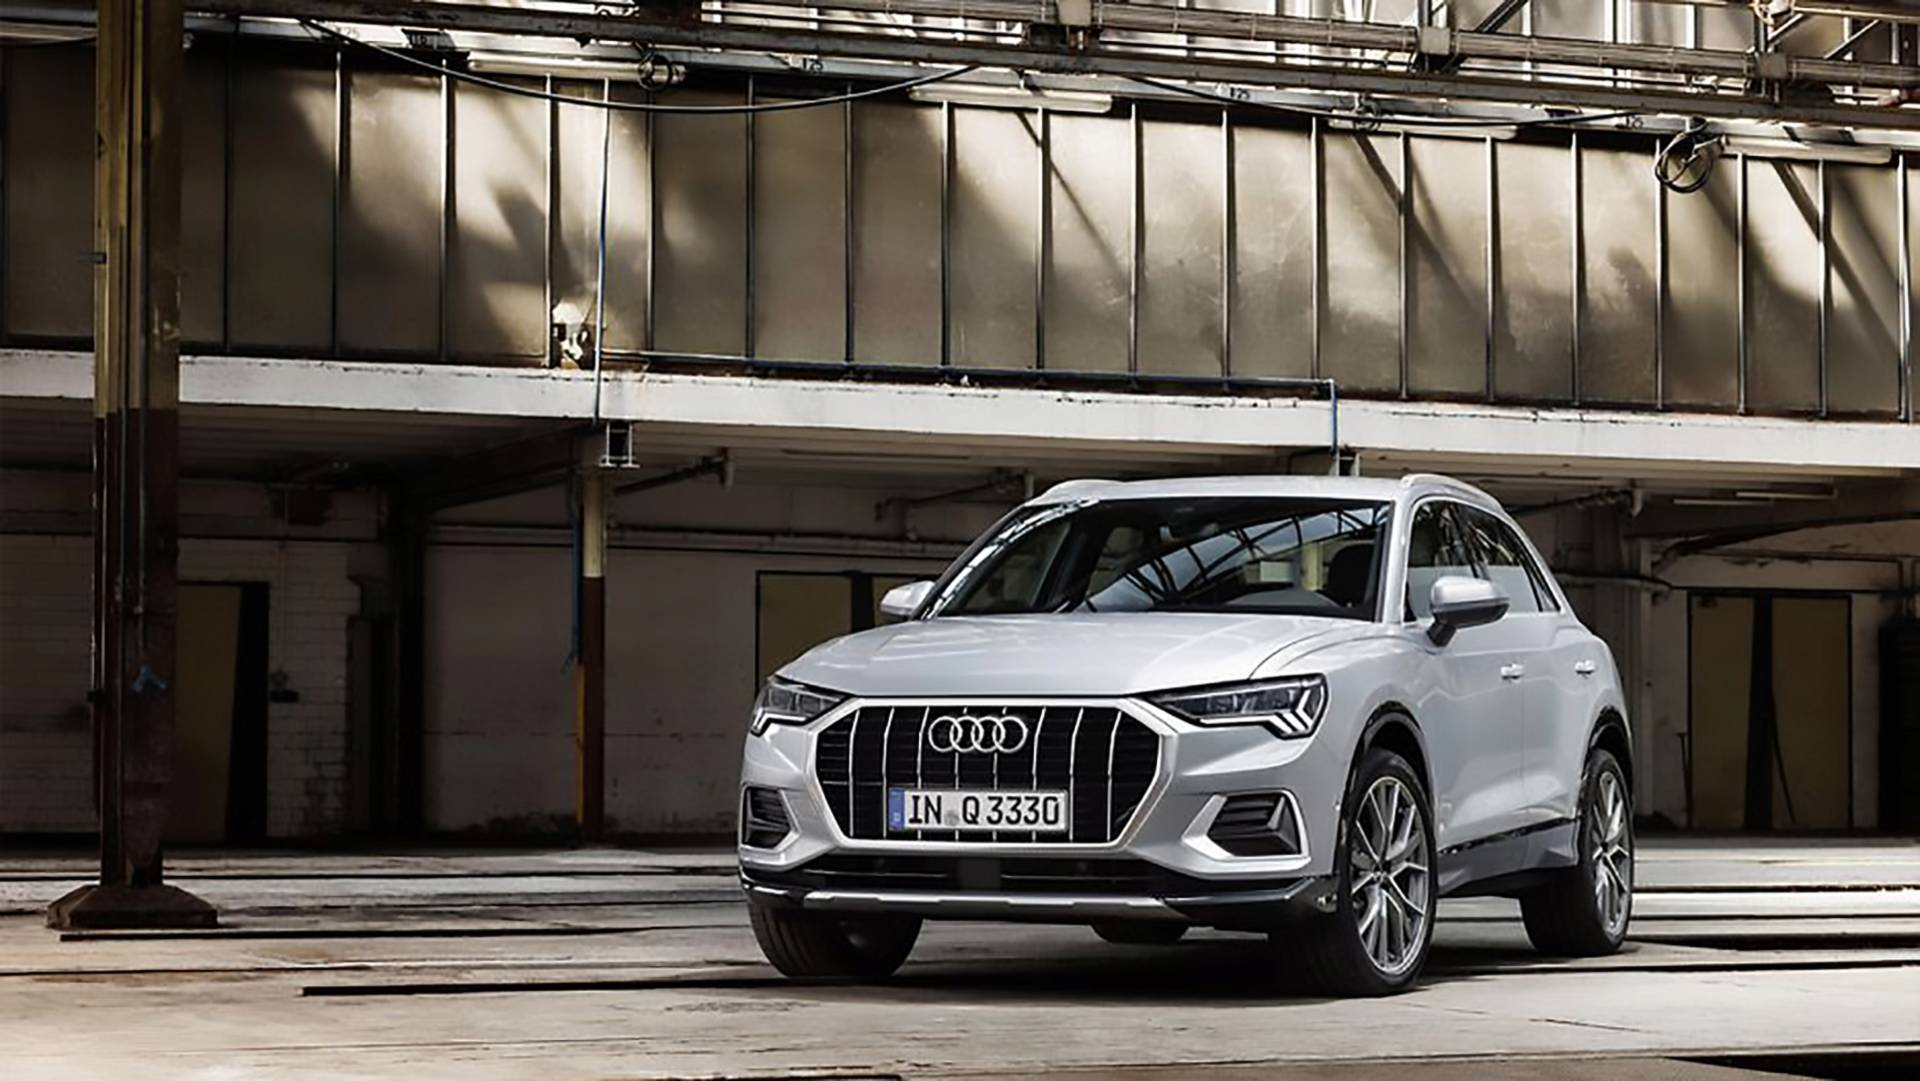 2019 Audi Q3 - Get To Know It With Nearly 30 Minutes Of Videos